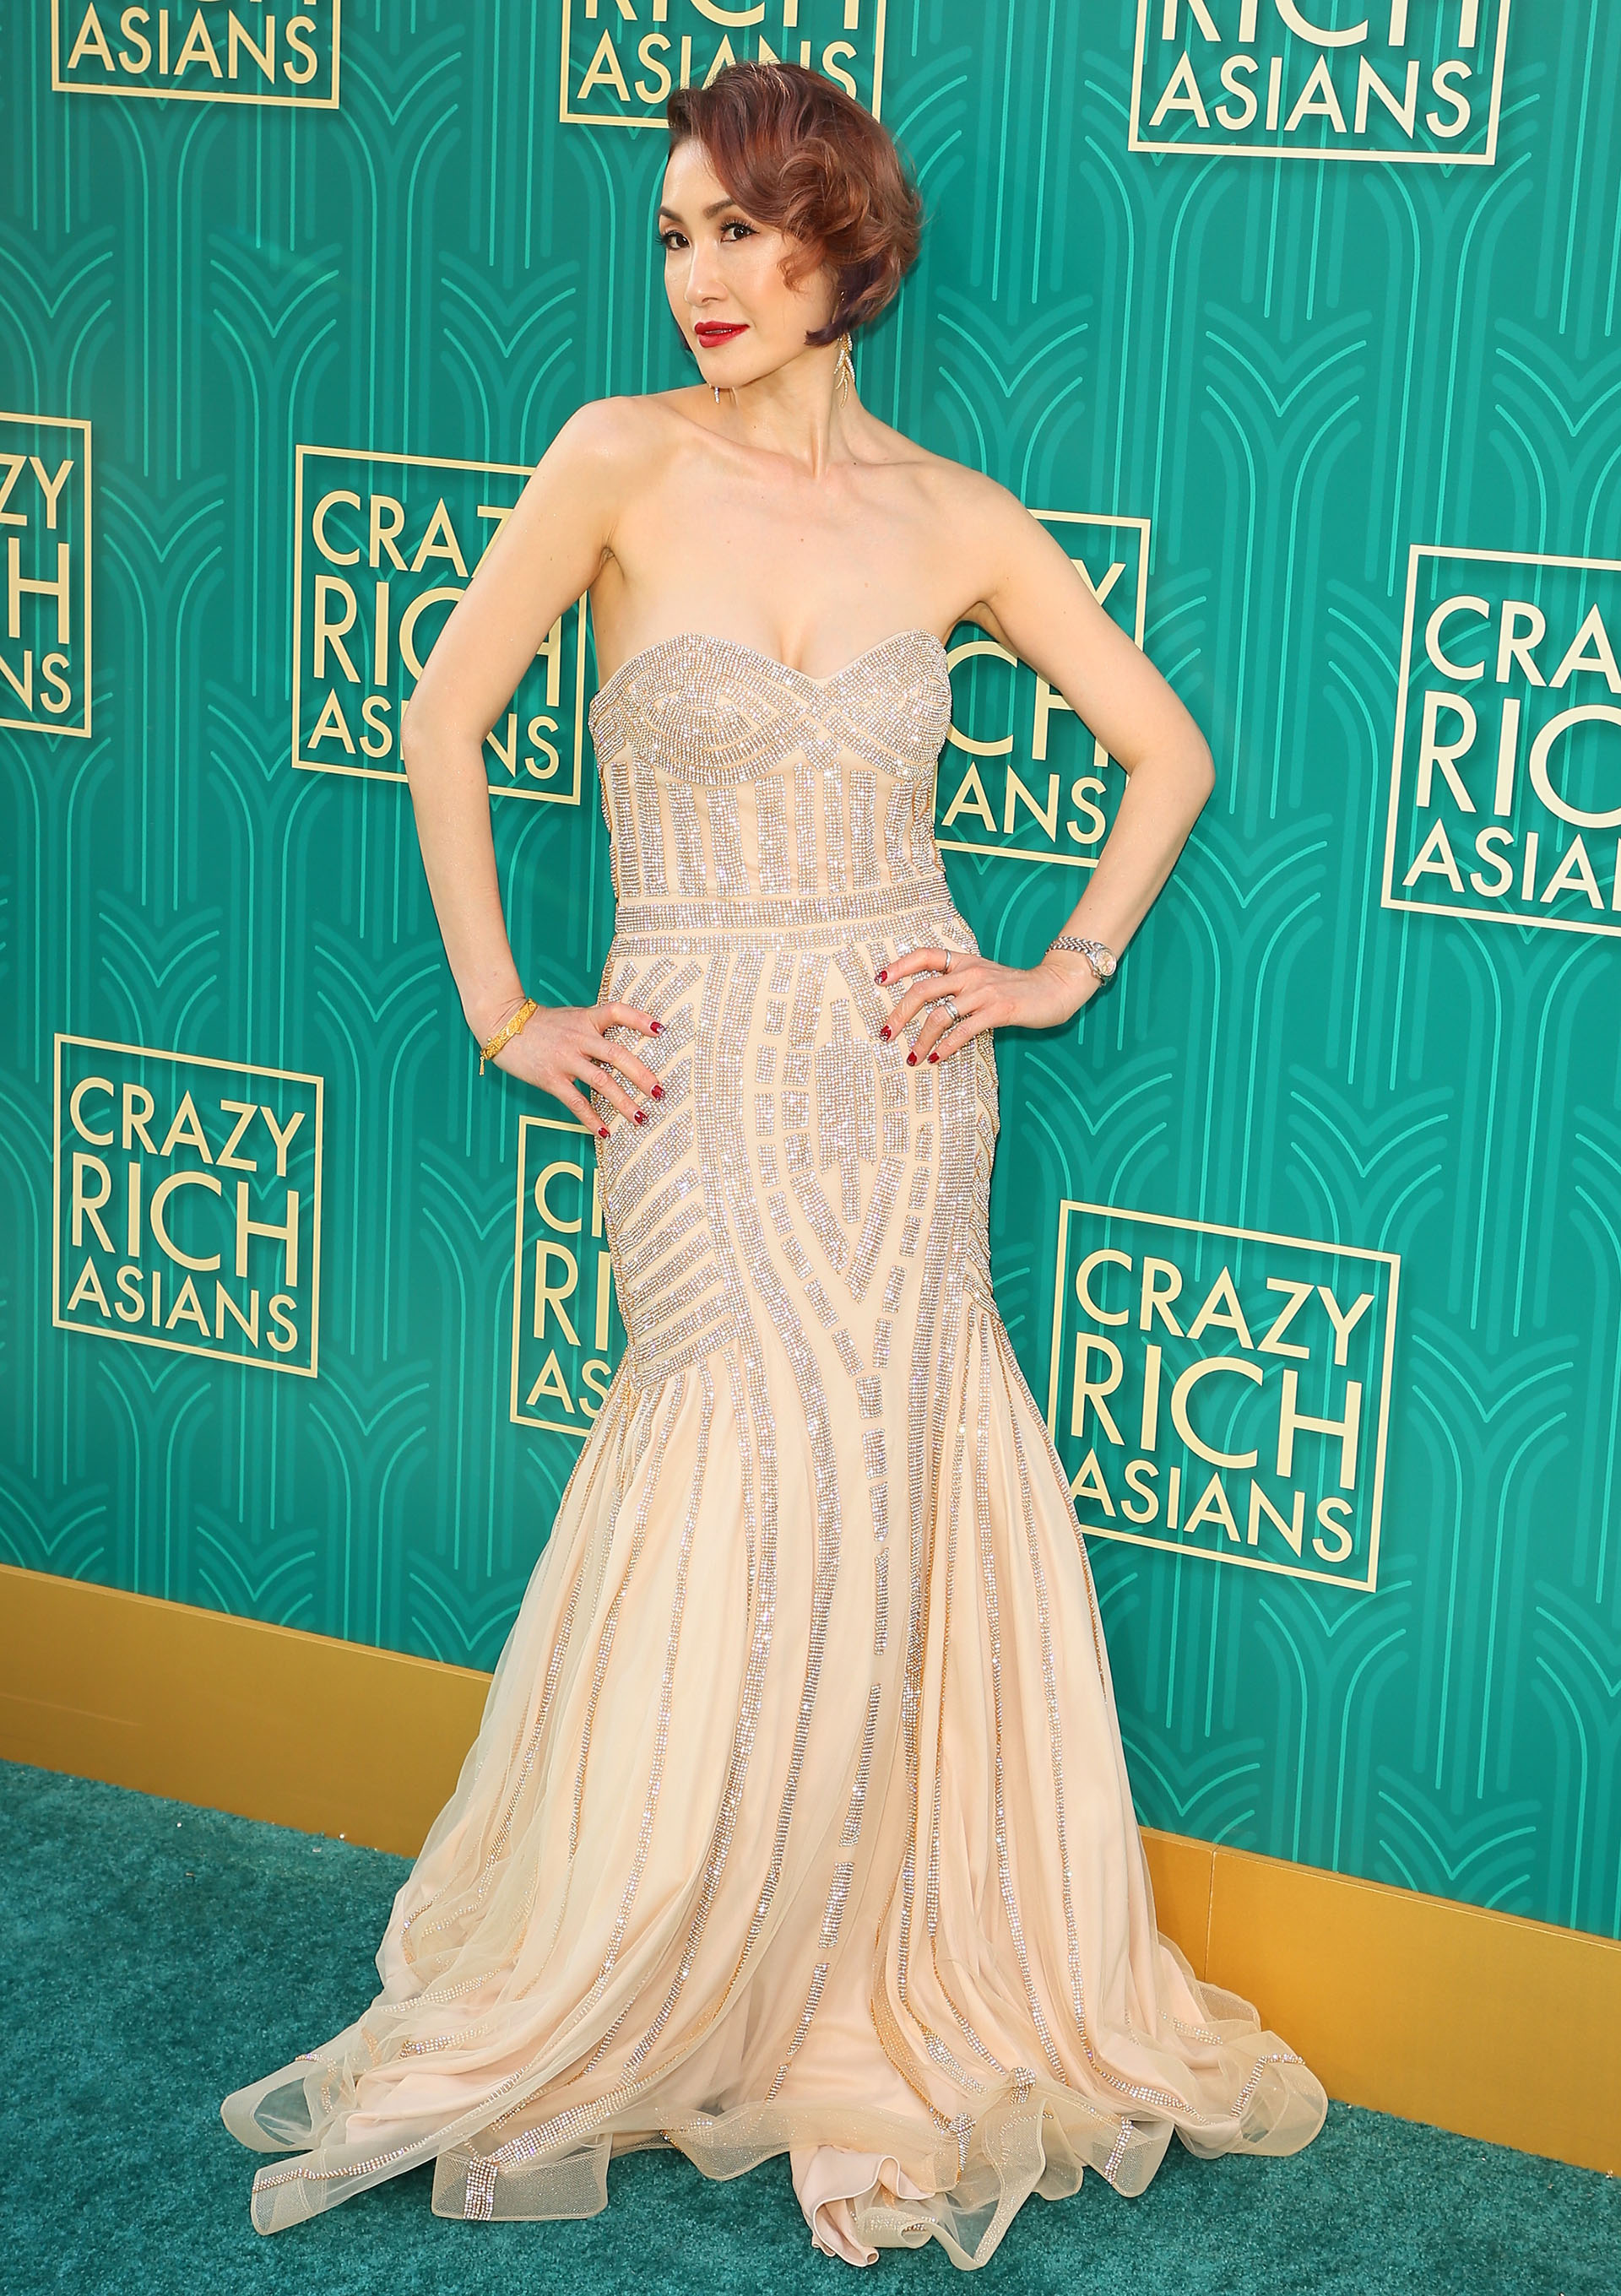 Glamorosa e impactante: la actriz Amy Cheng a su llegada a la premiere de Crazy Rich Asians en Hollywood, California